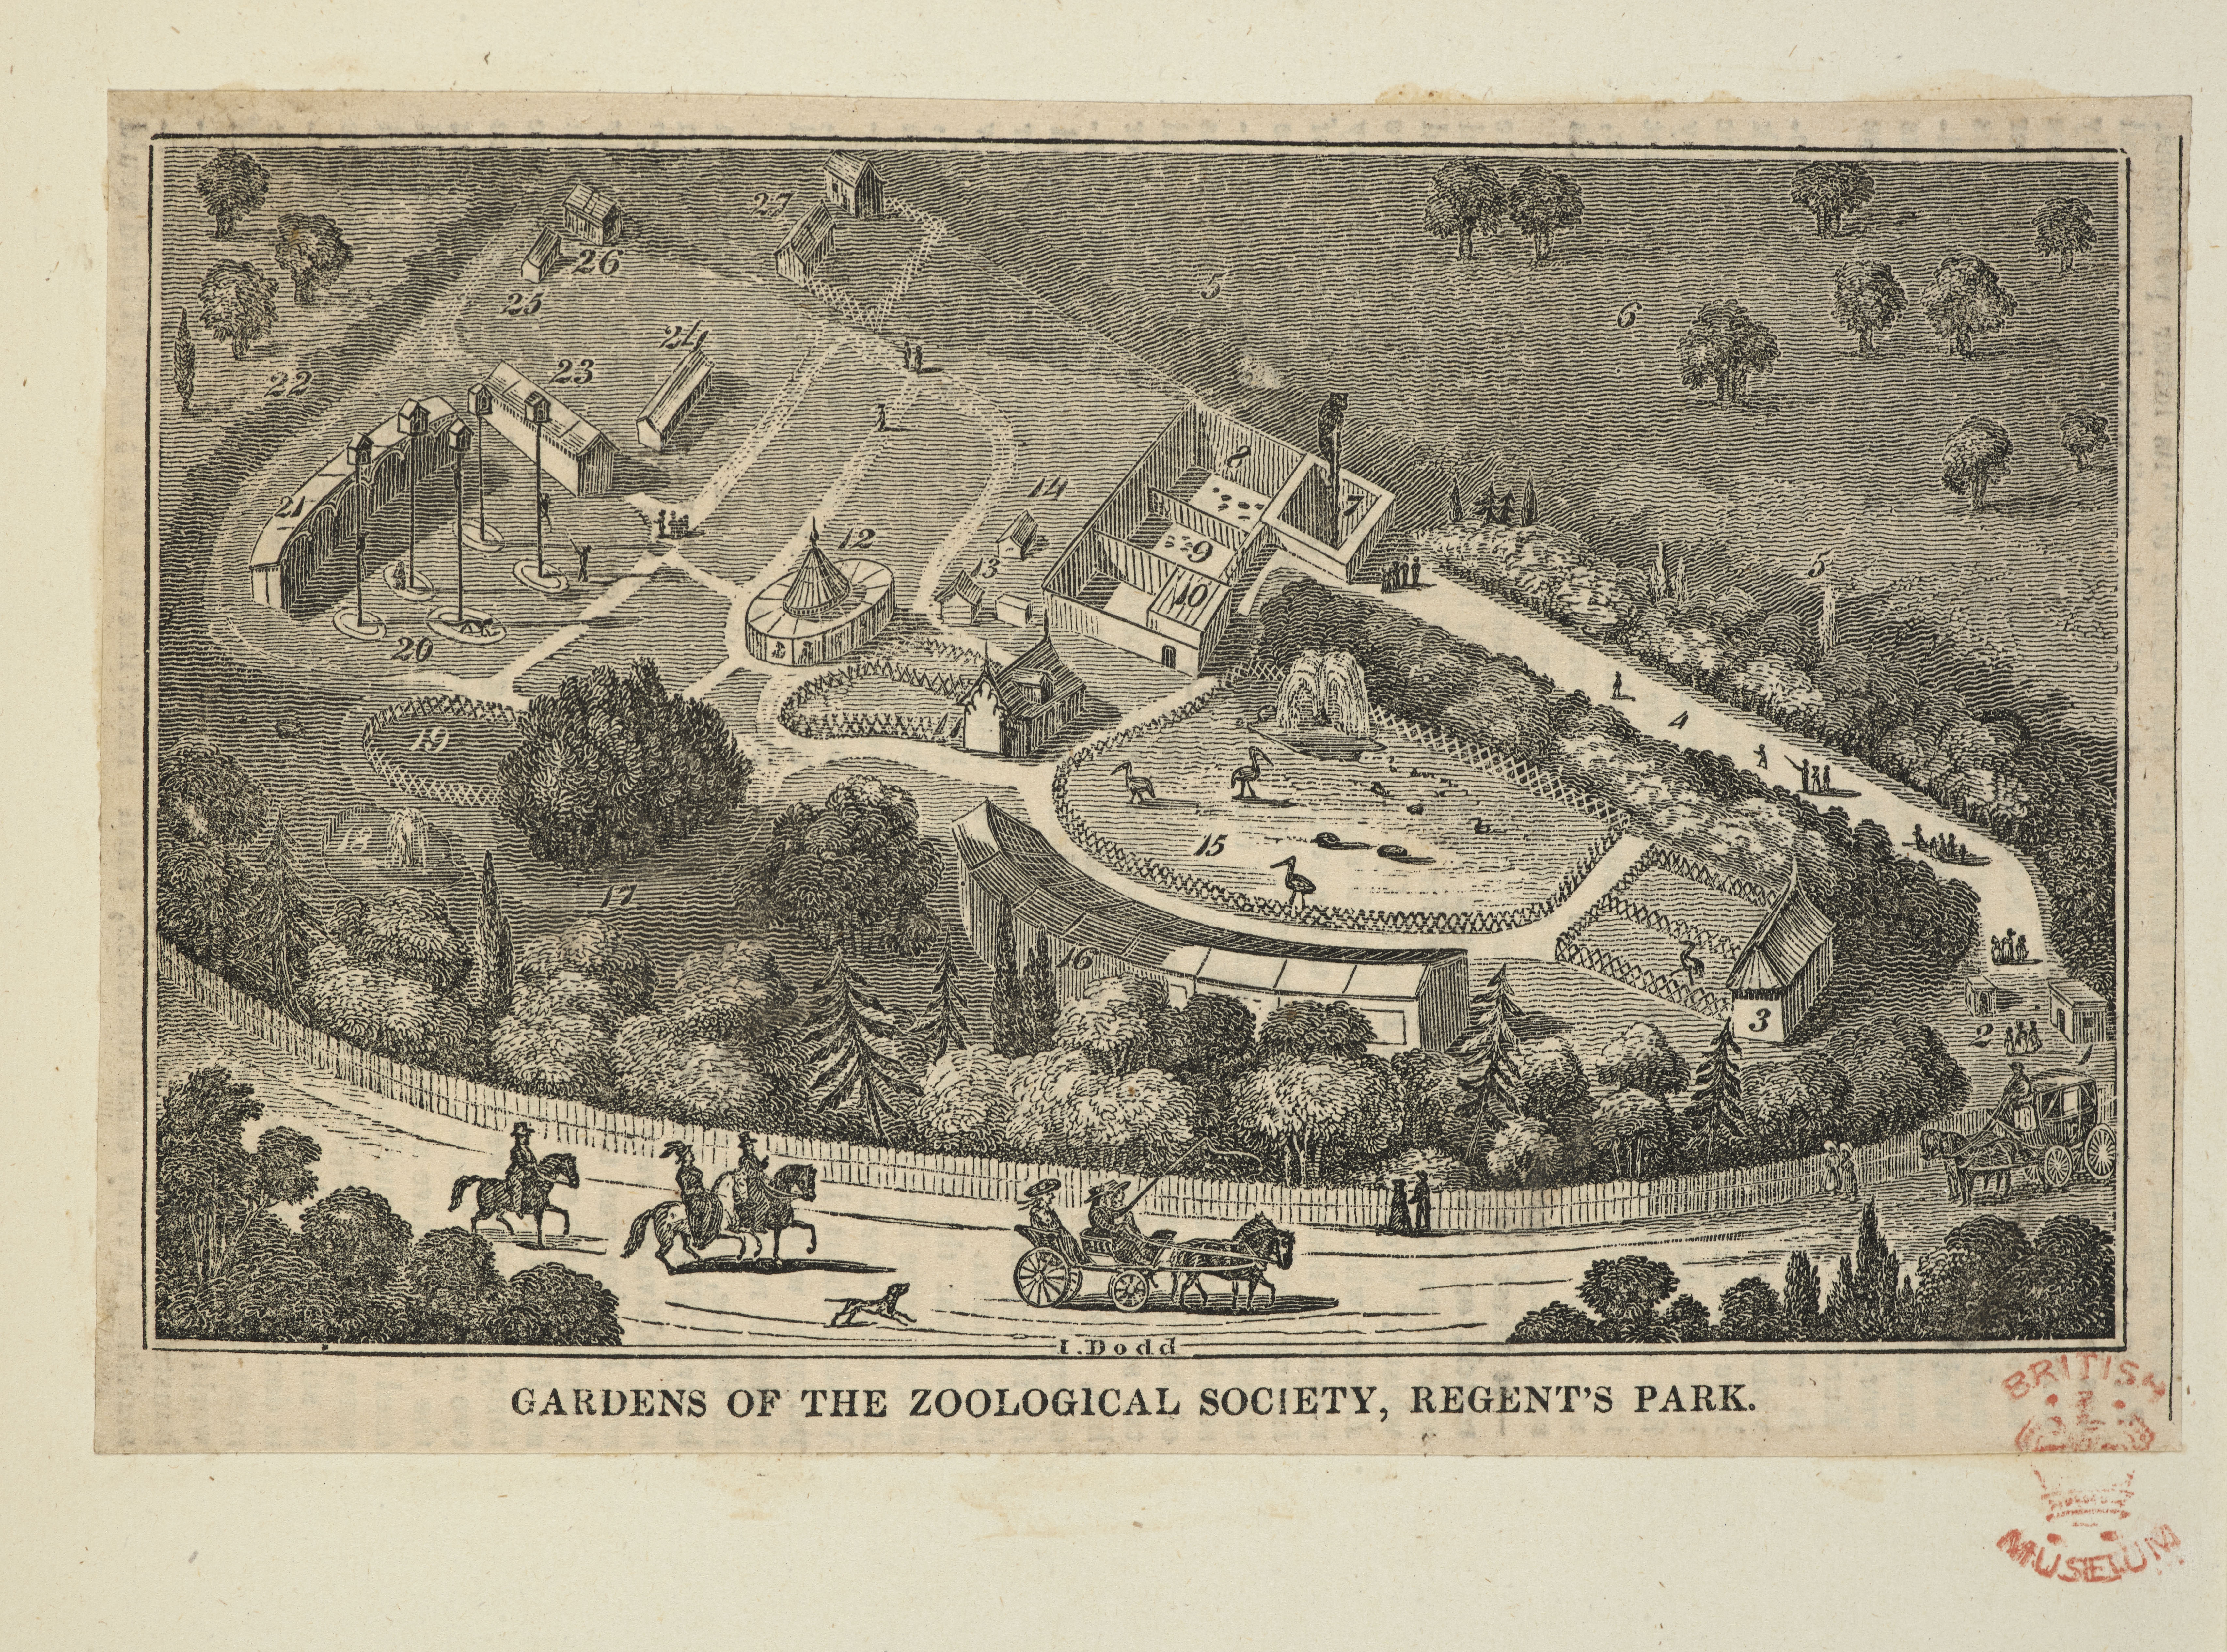 A print showing the Gardens of the Zoological Society in Regents Park.